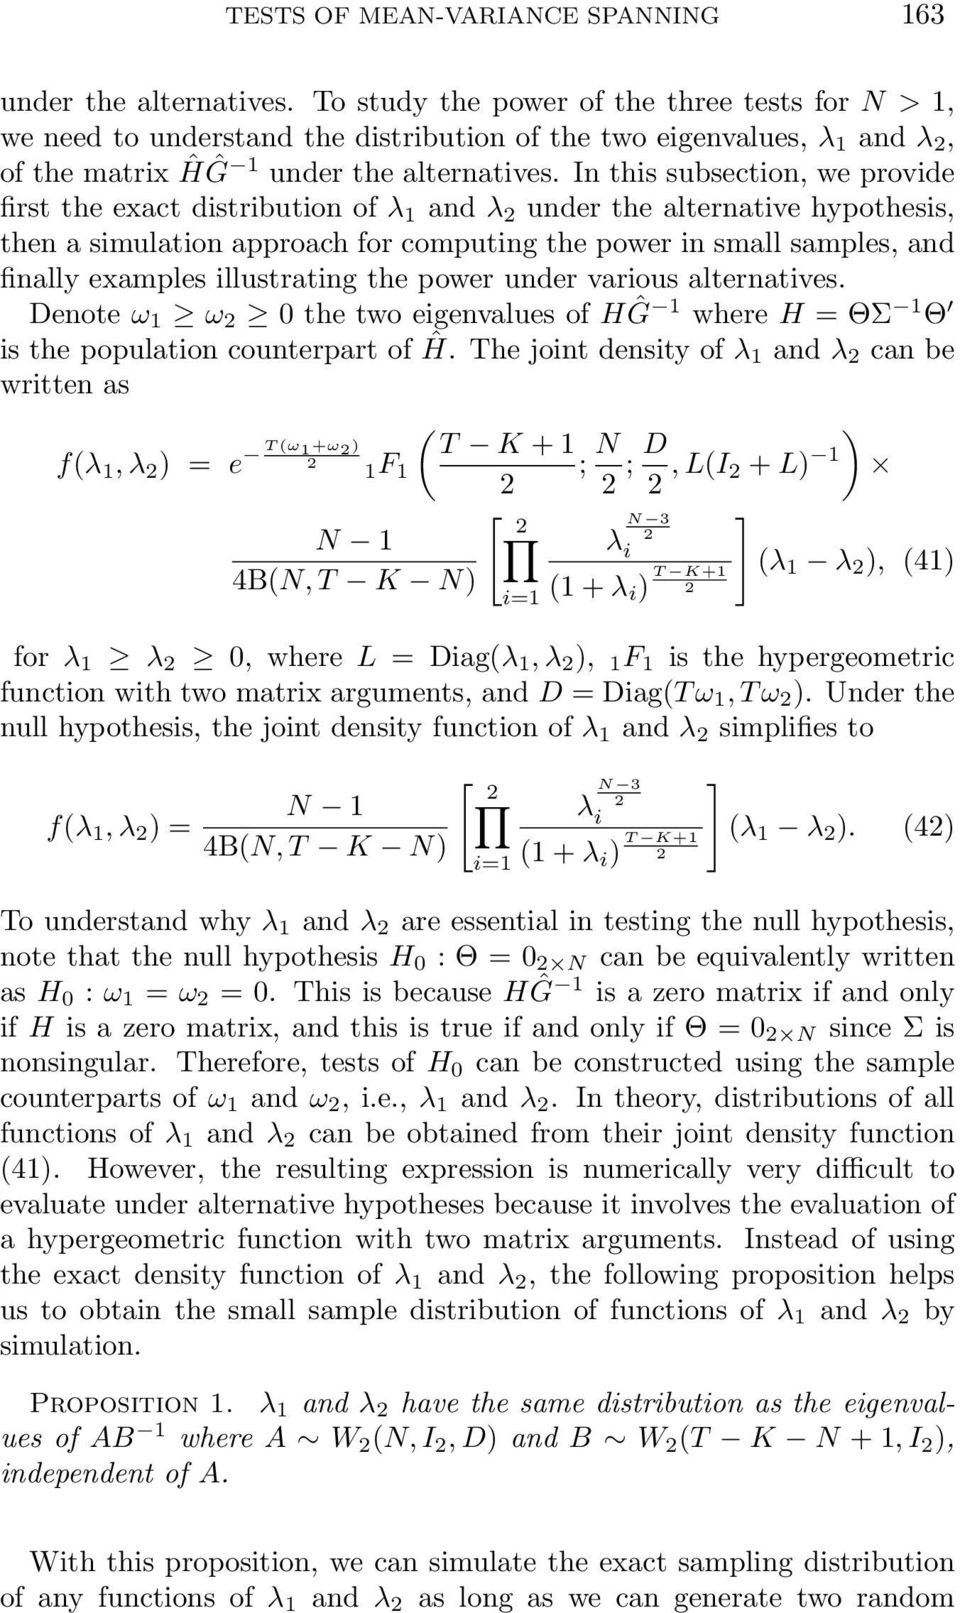 In this subsection, we provide first the exact distribution of λ 1 and λ 2 under the alternative hypothesis, then a simulation approach for computing the power in small samples, and finally examples